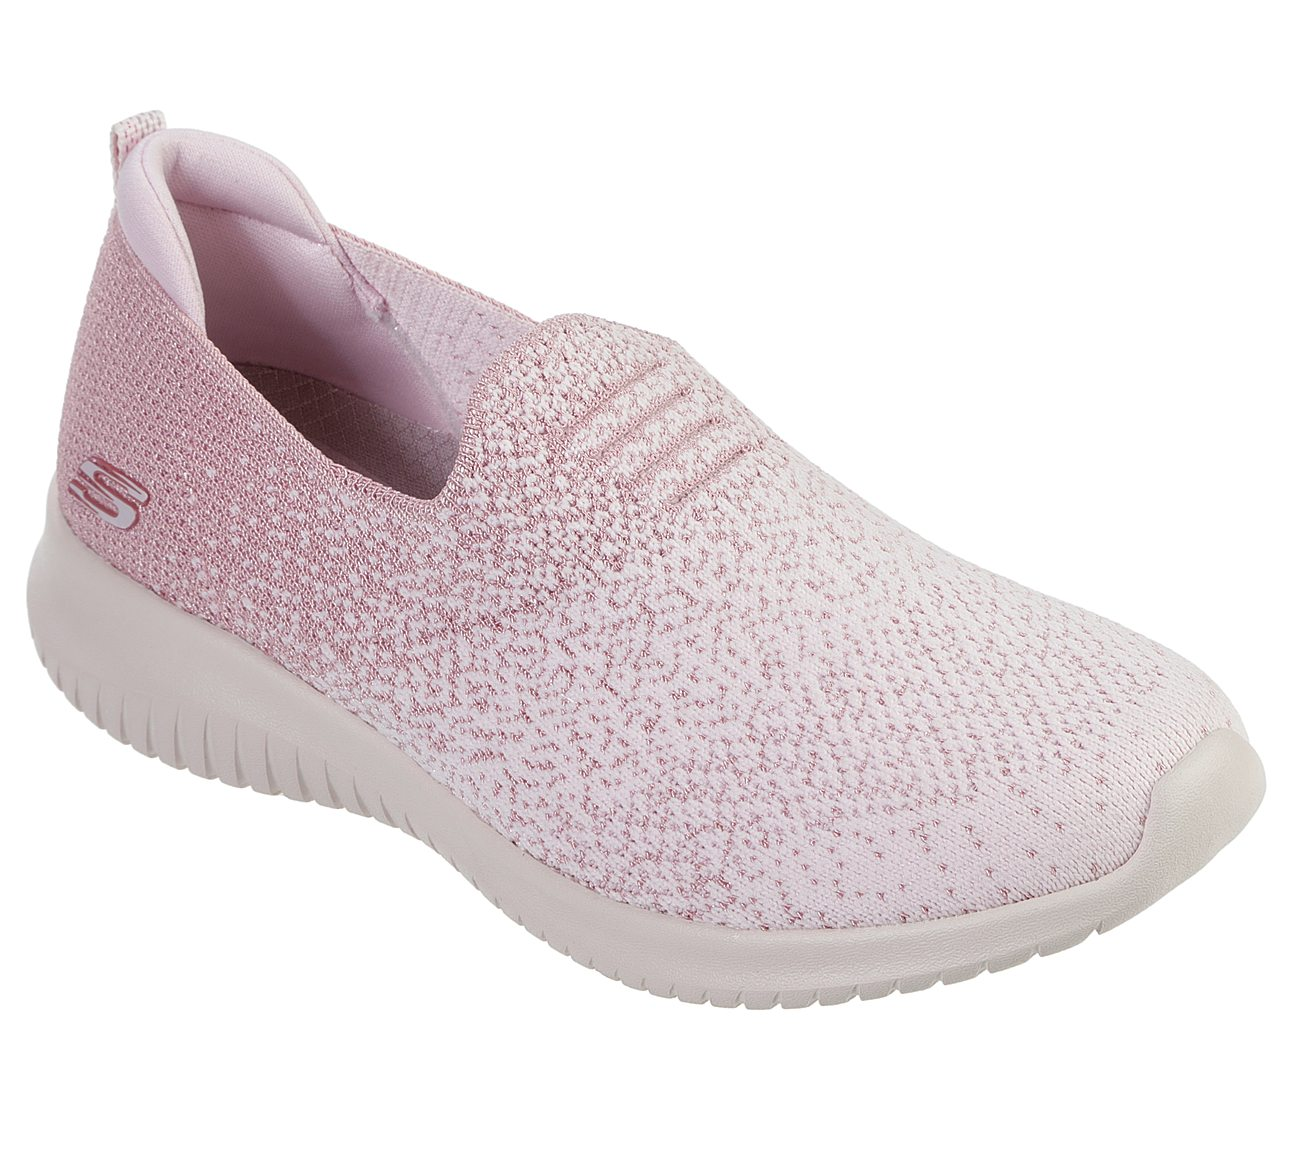 photo regarding Skechers Coupons in Store Printable identified as Extremely Flex - Snug Working day